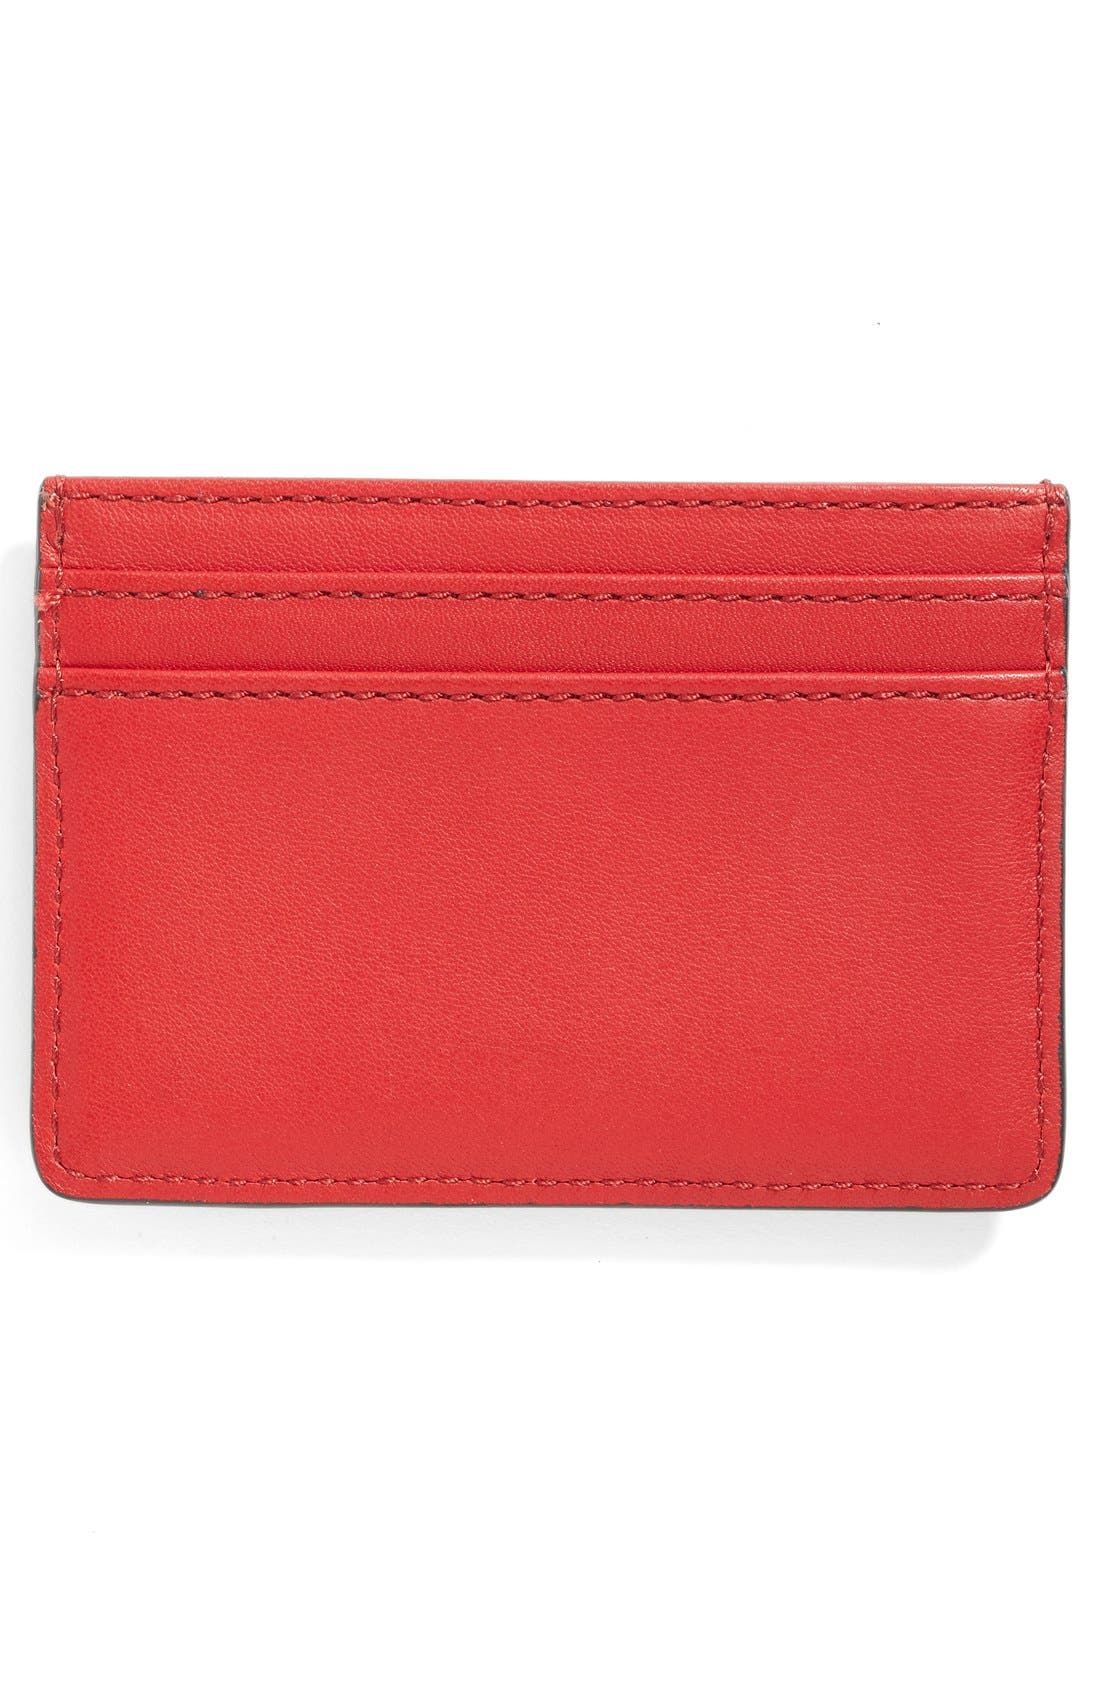 Rooster Leather Card Case,                             Alternate thumbnail 5, color,                             647